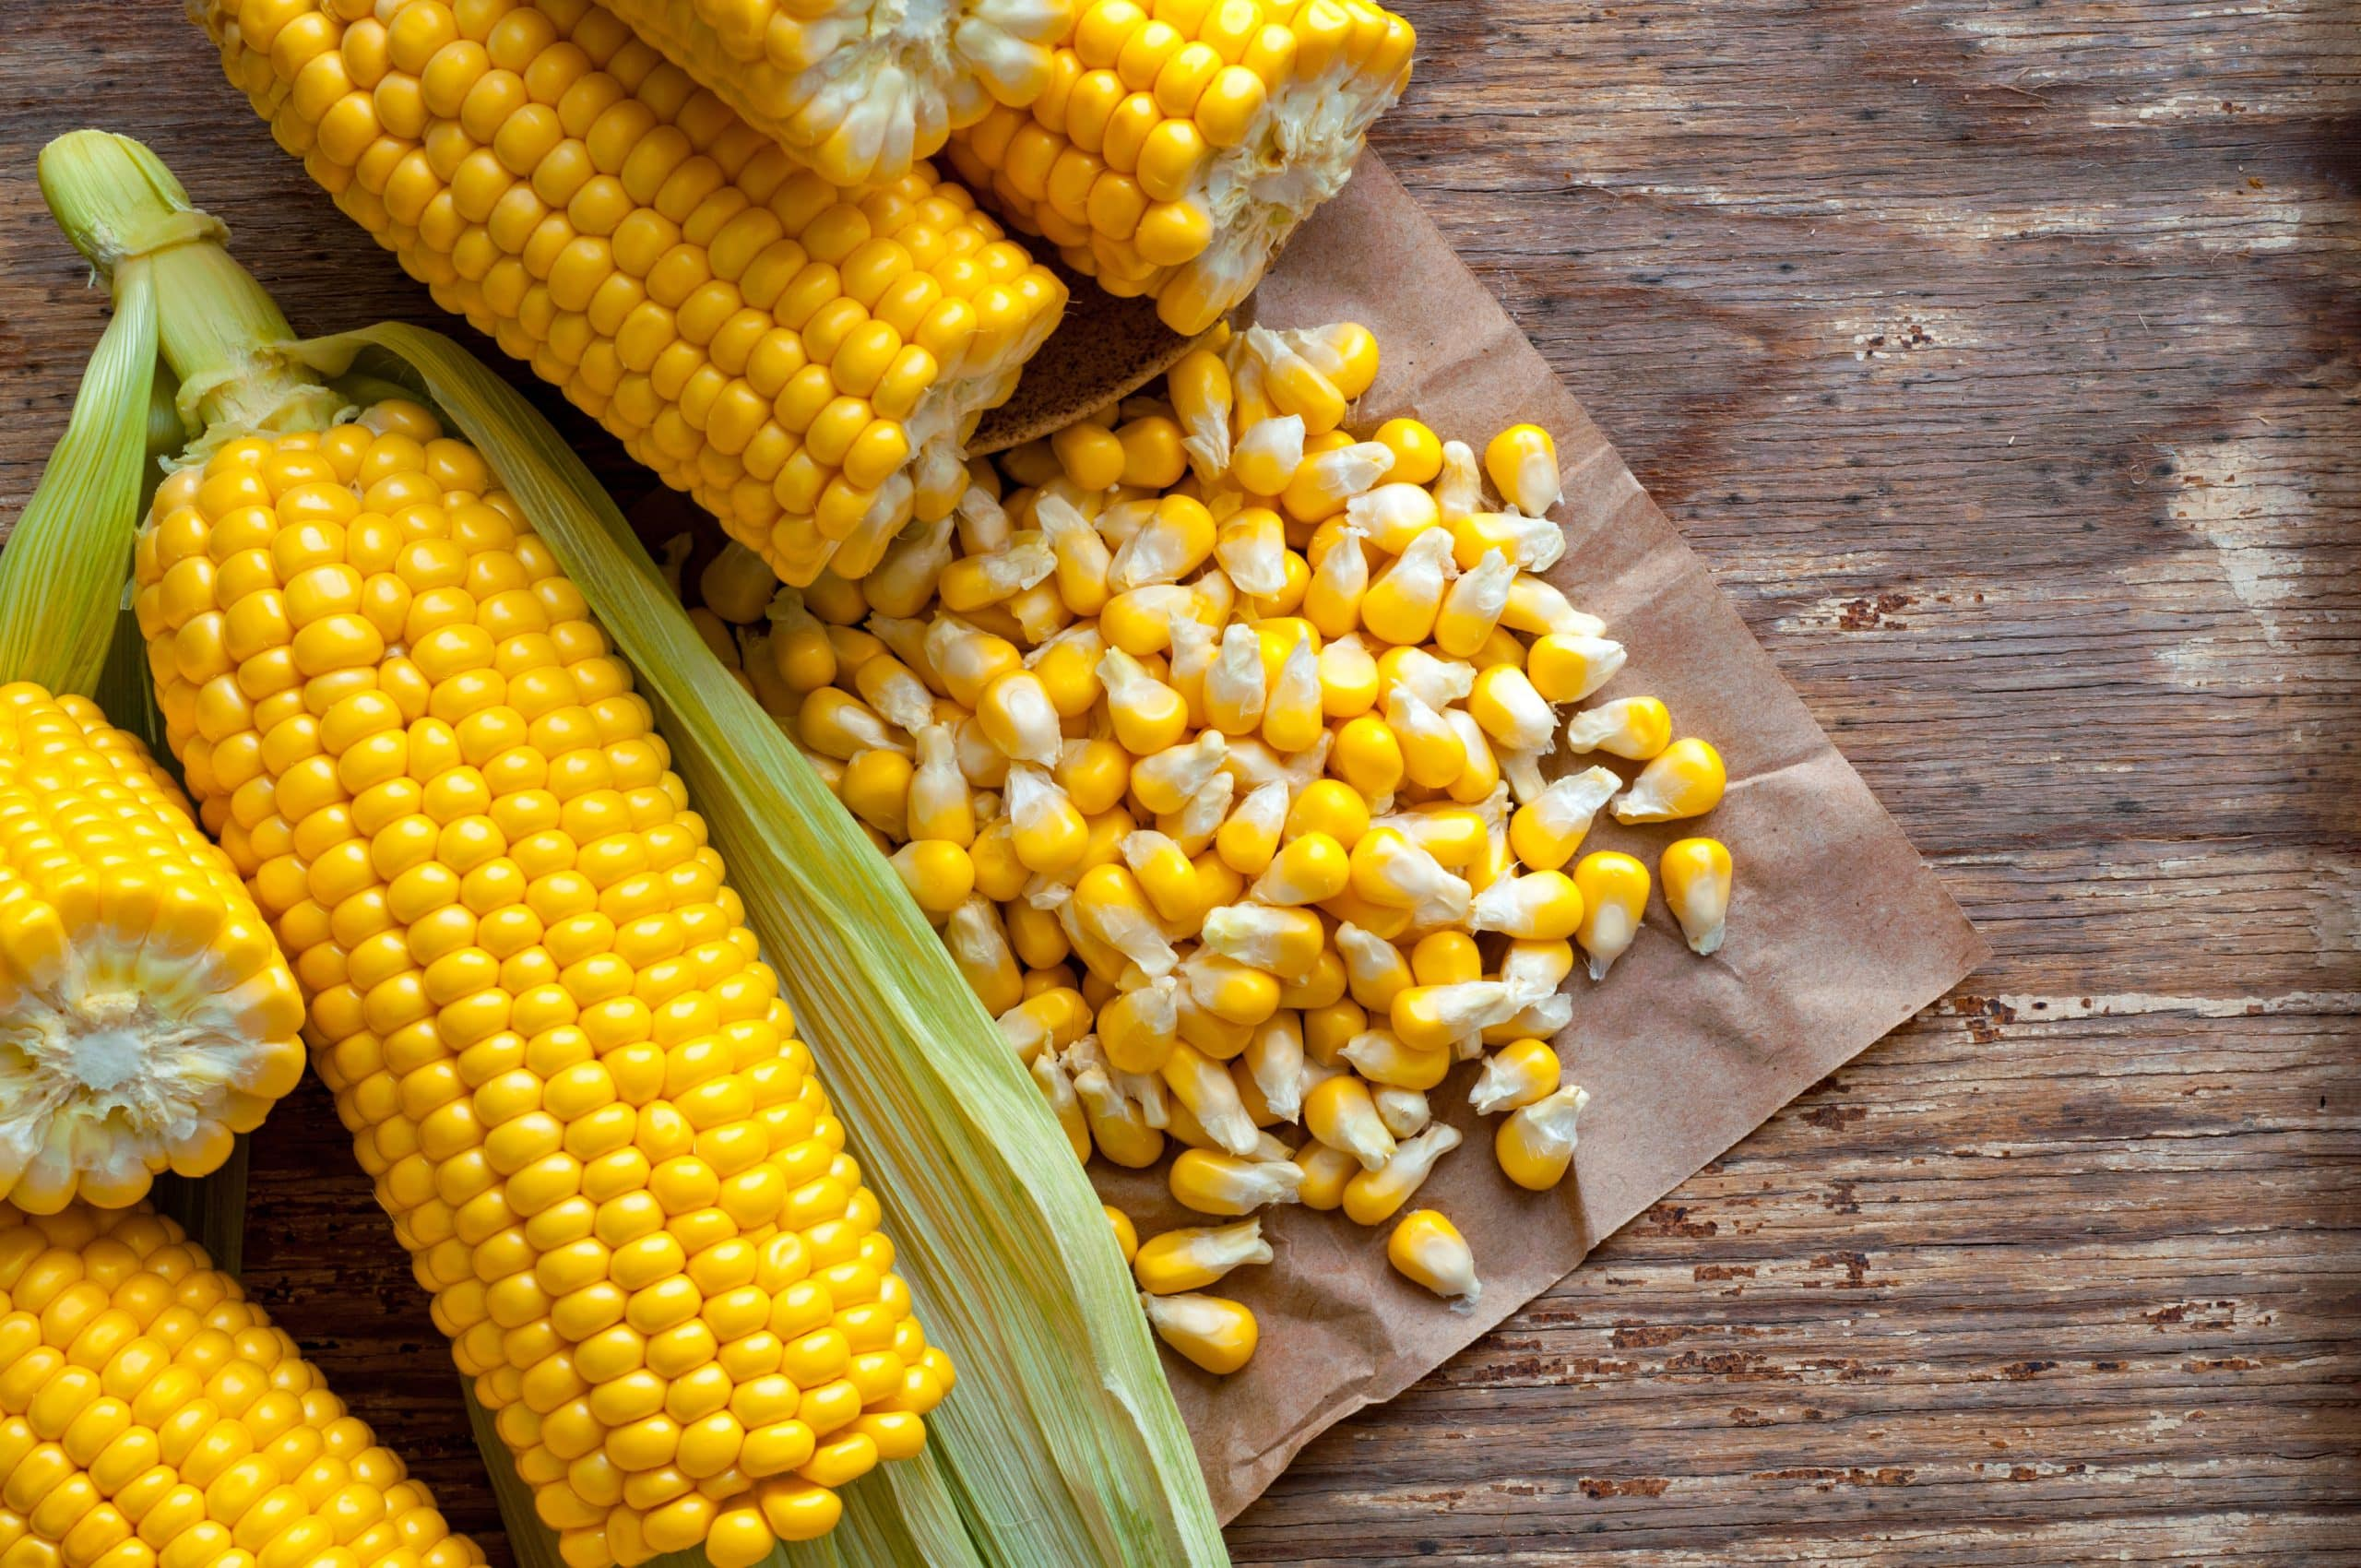 Yello w or white maize can be used for pap